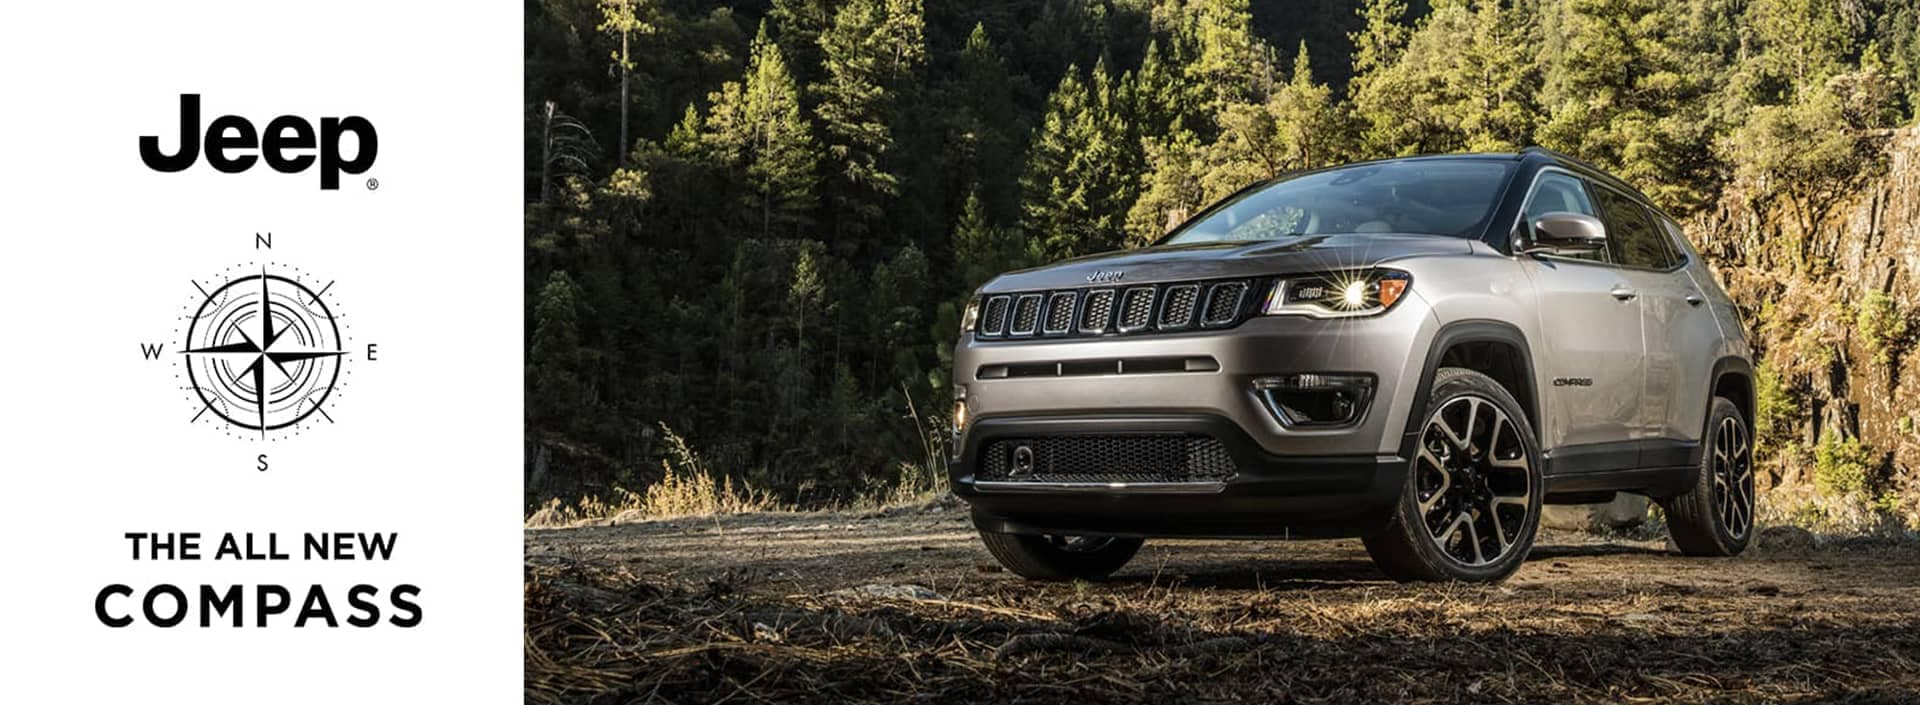 Jeep Compass promotion